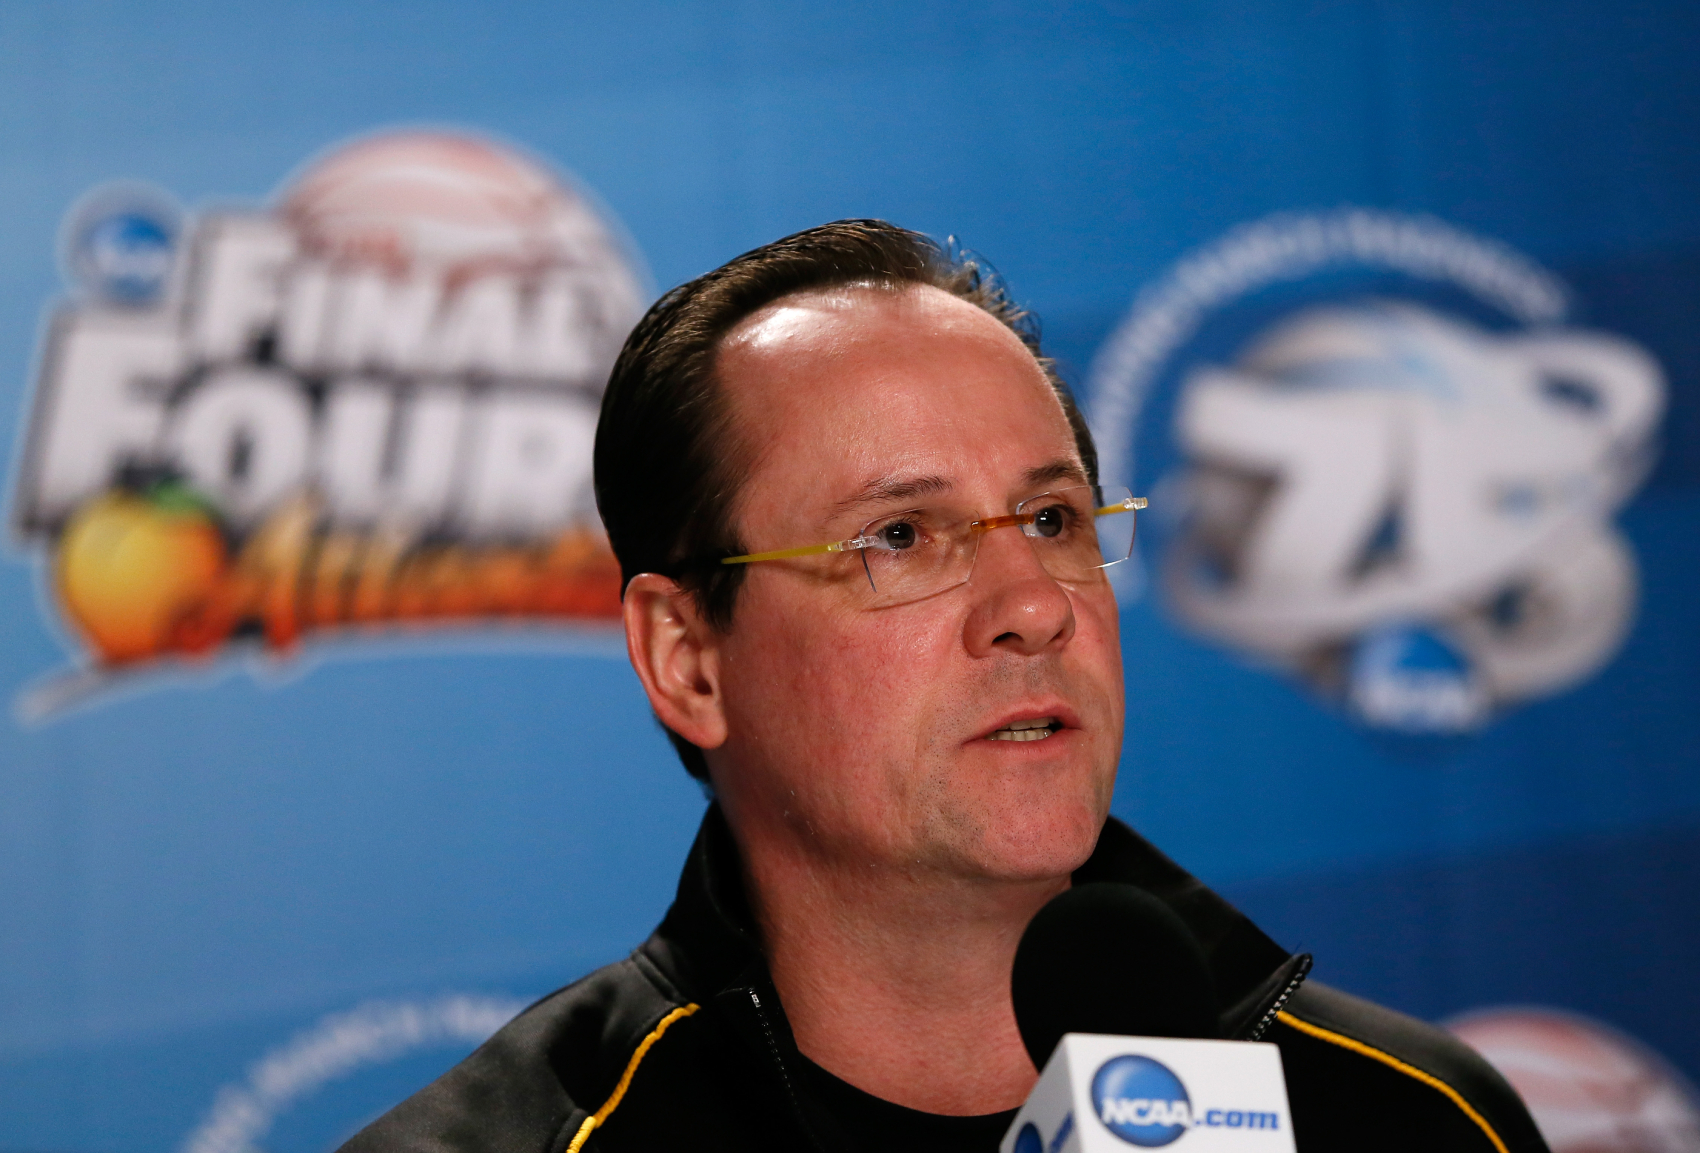 Damning allegations about Wichita State coach Gregg Marshall recently came to light. Based on history, his job could certainly be in jeopardy.